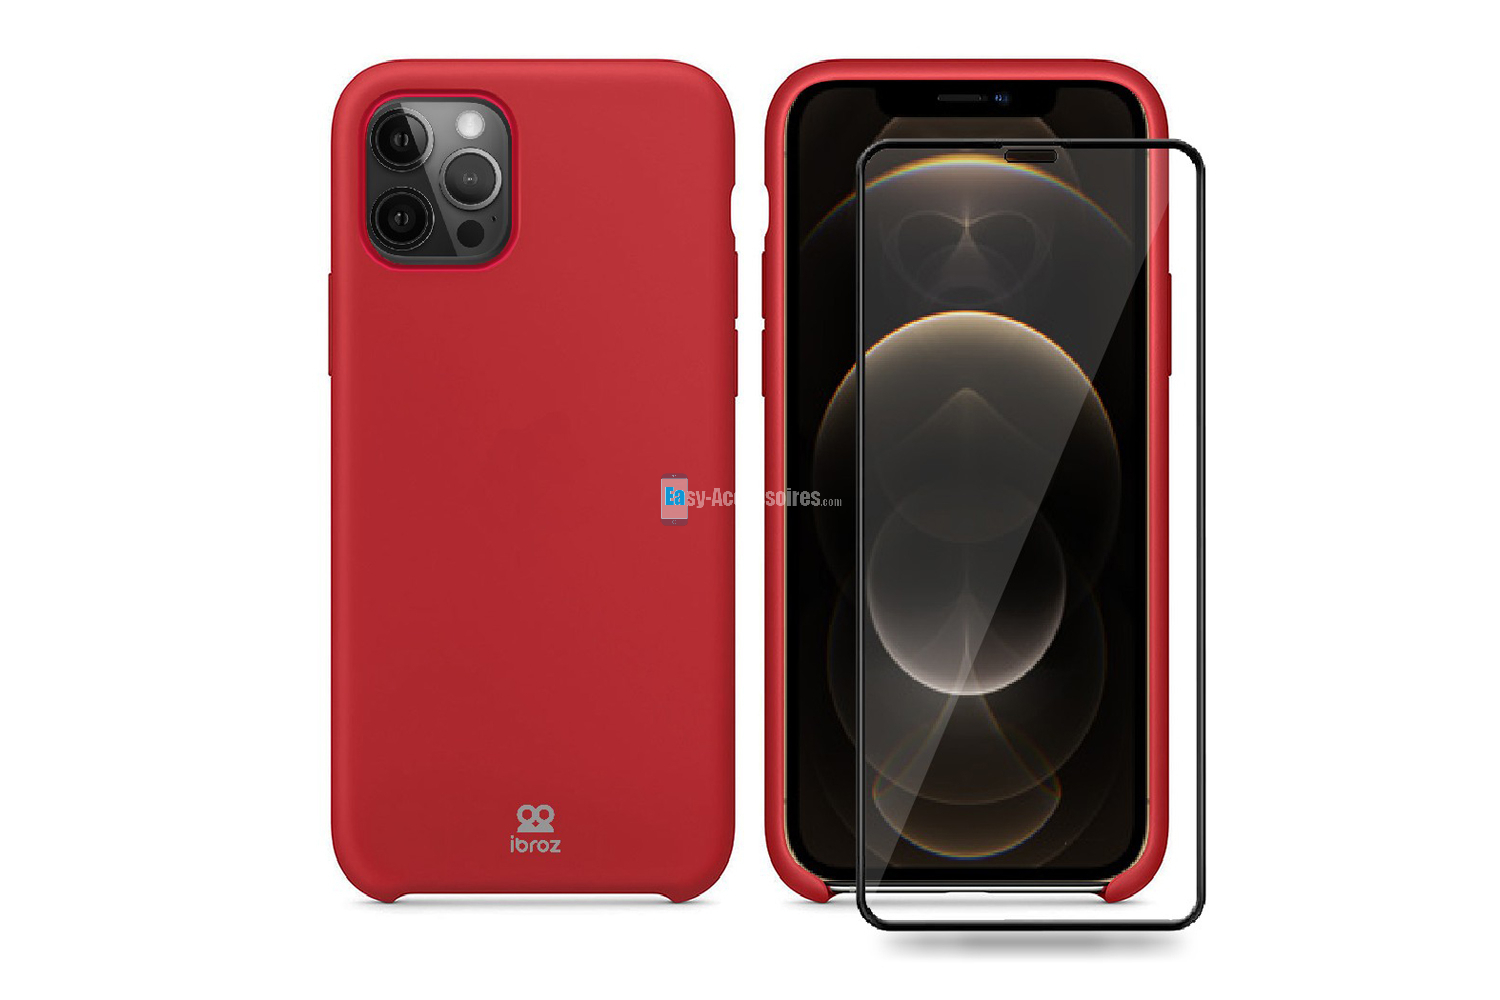 iPhone 12 Pro Max Coque Liquid Rouge + Verre Trempé